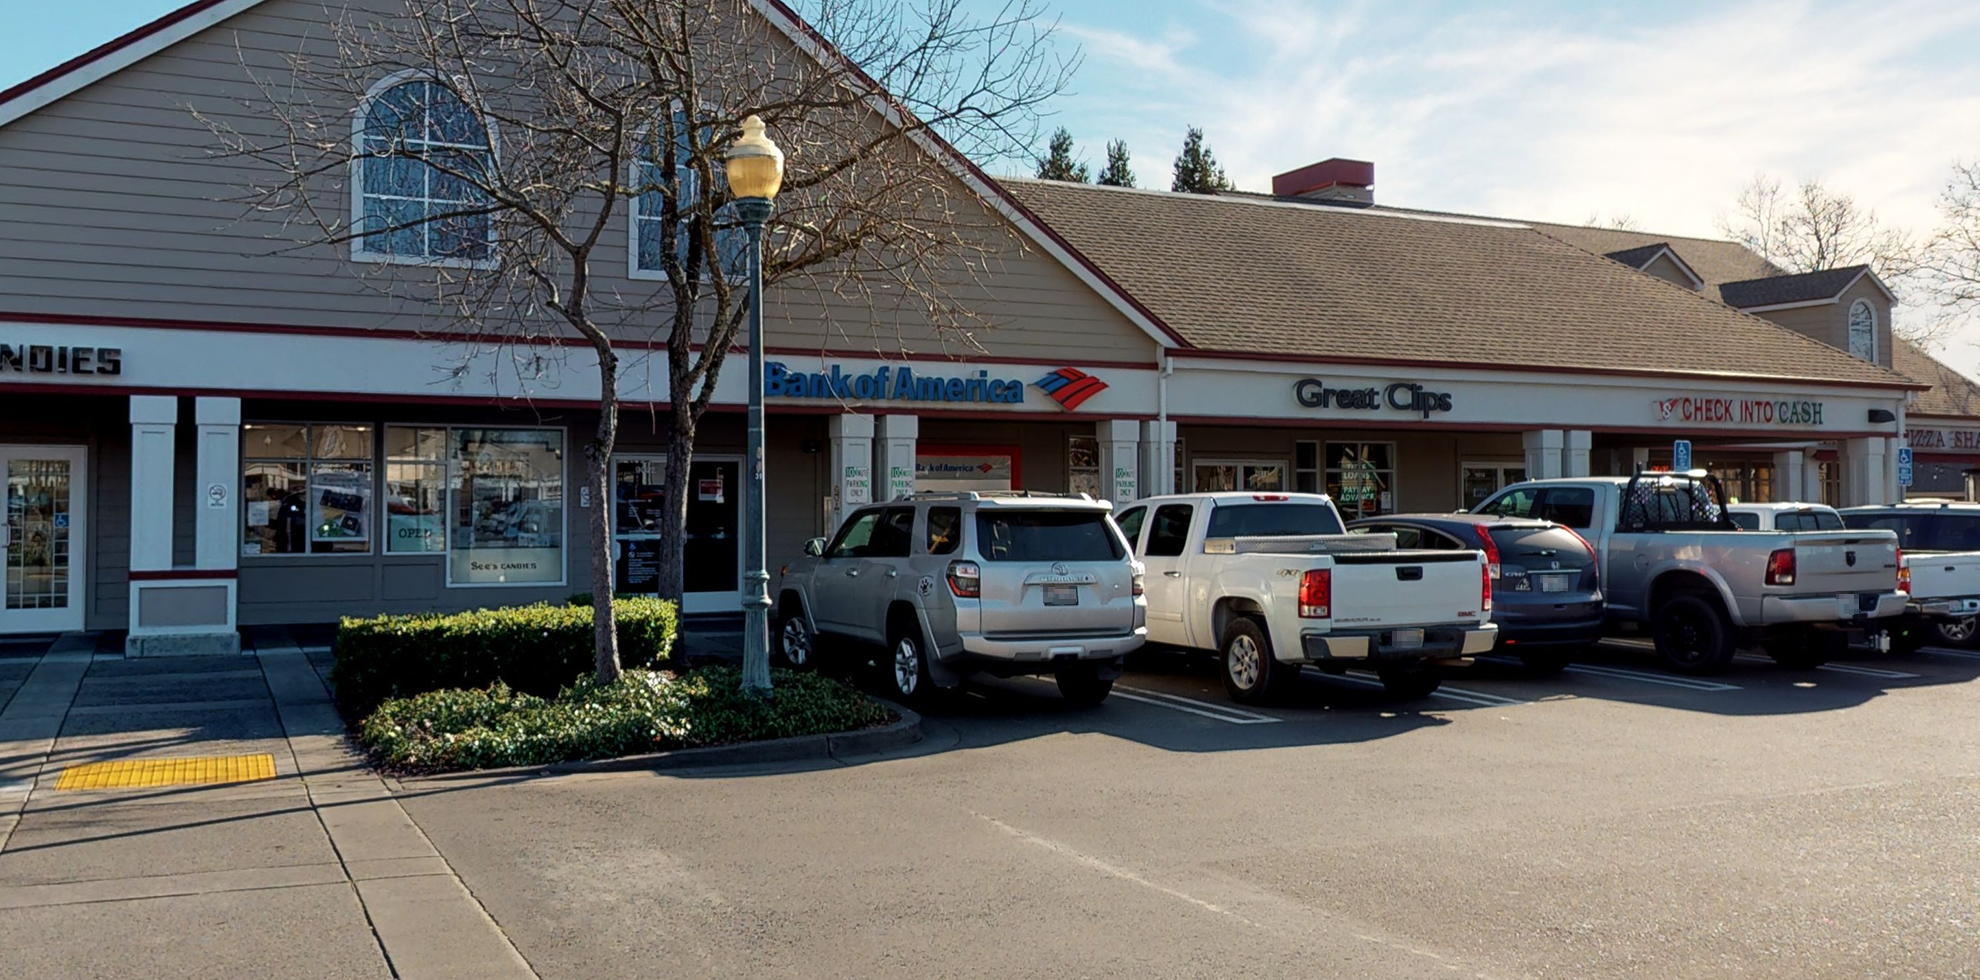 Bank of America financial center with walk-up ATM   9022 Brooks Rd S, Windsor, CA 95492